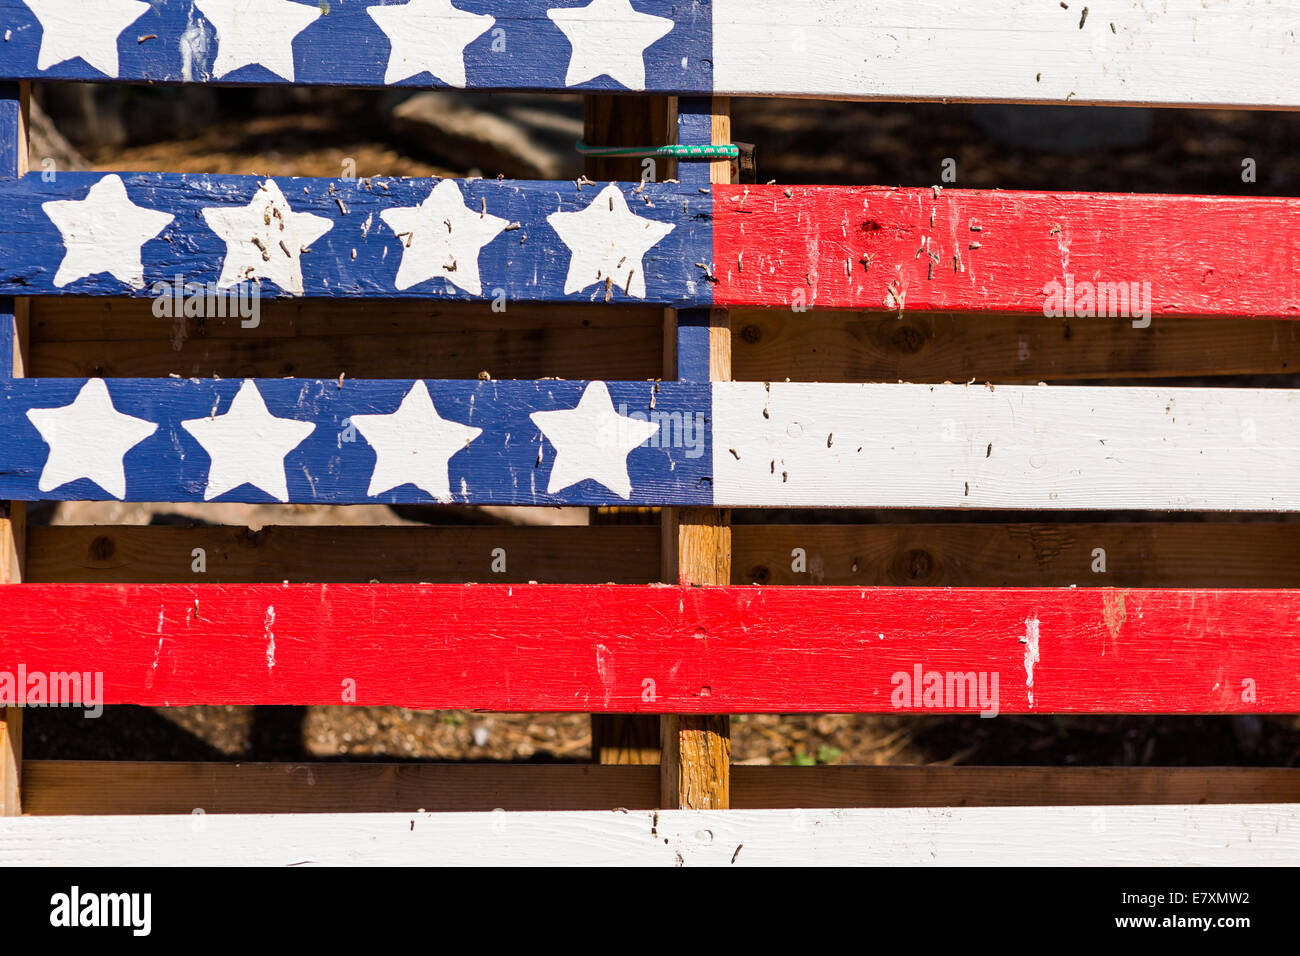 American Flag Painted On Top Of Old Wood Pallet